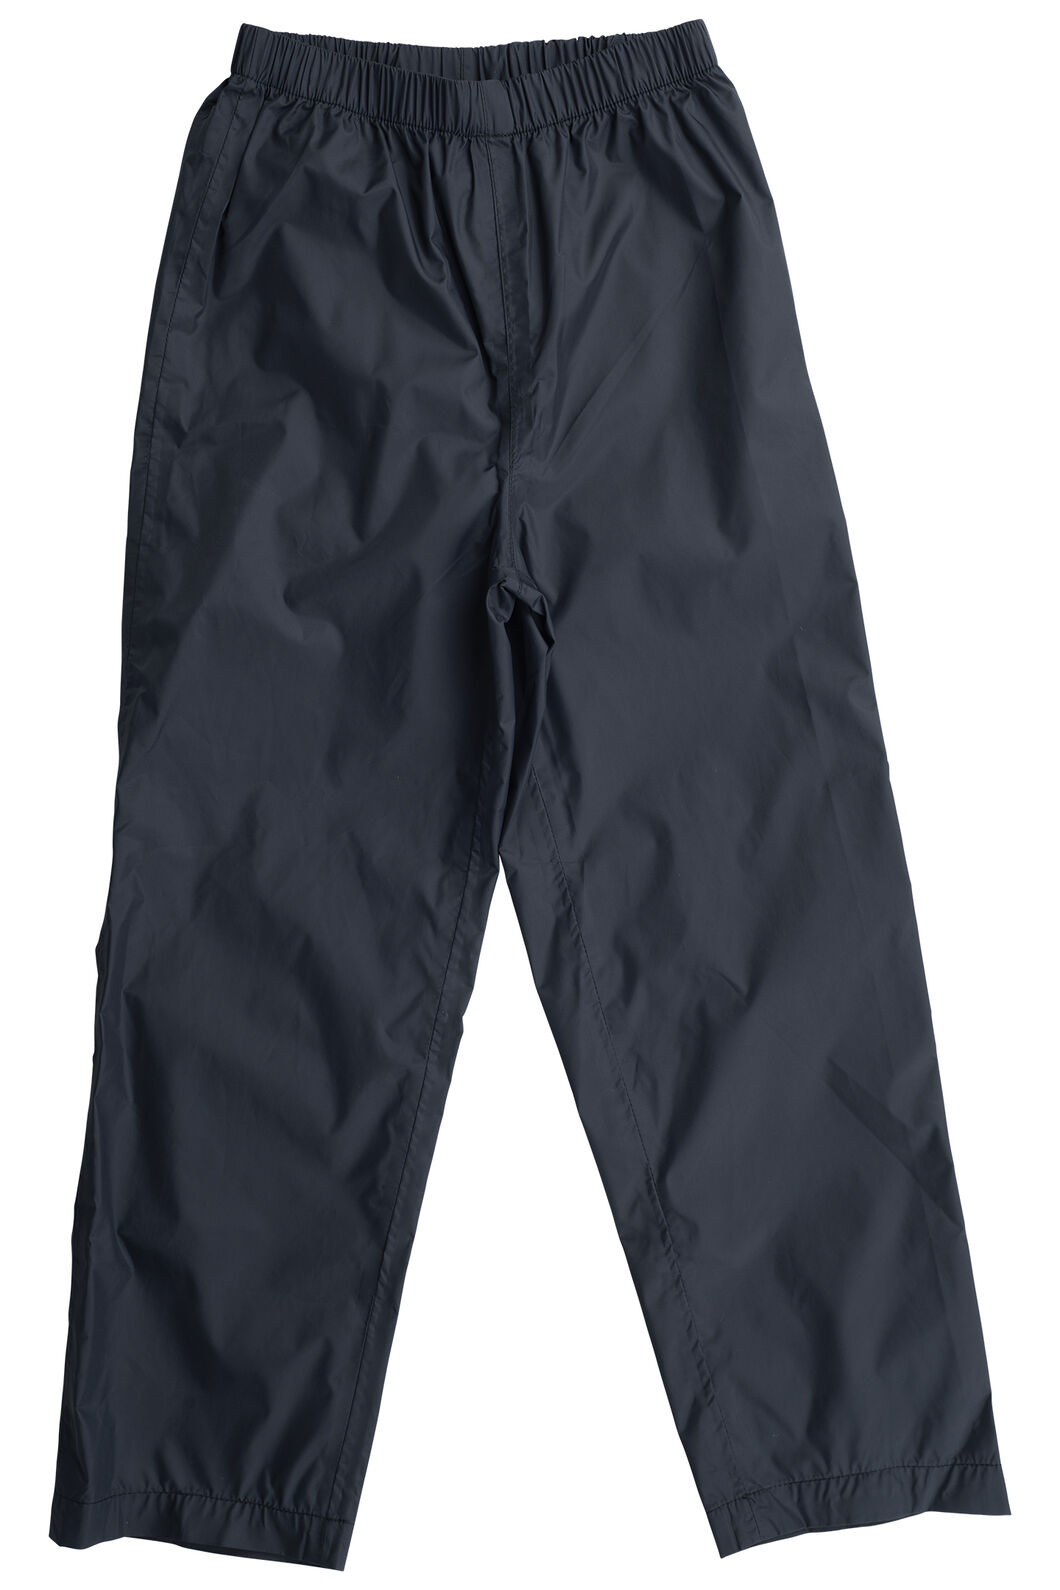 Macpac Pack-It Pants — Kids', Black, hi-res